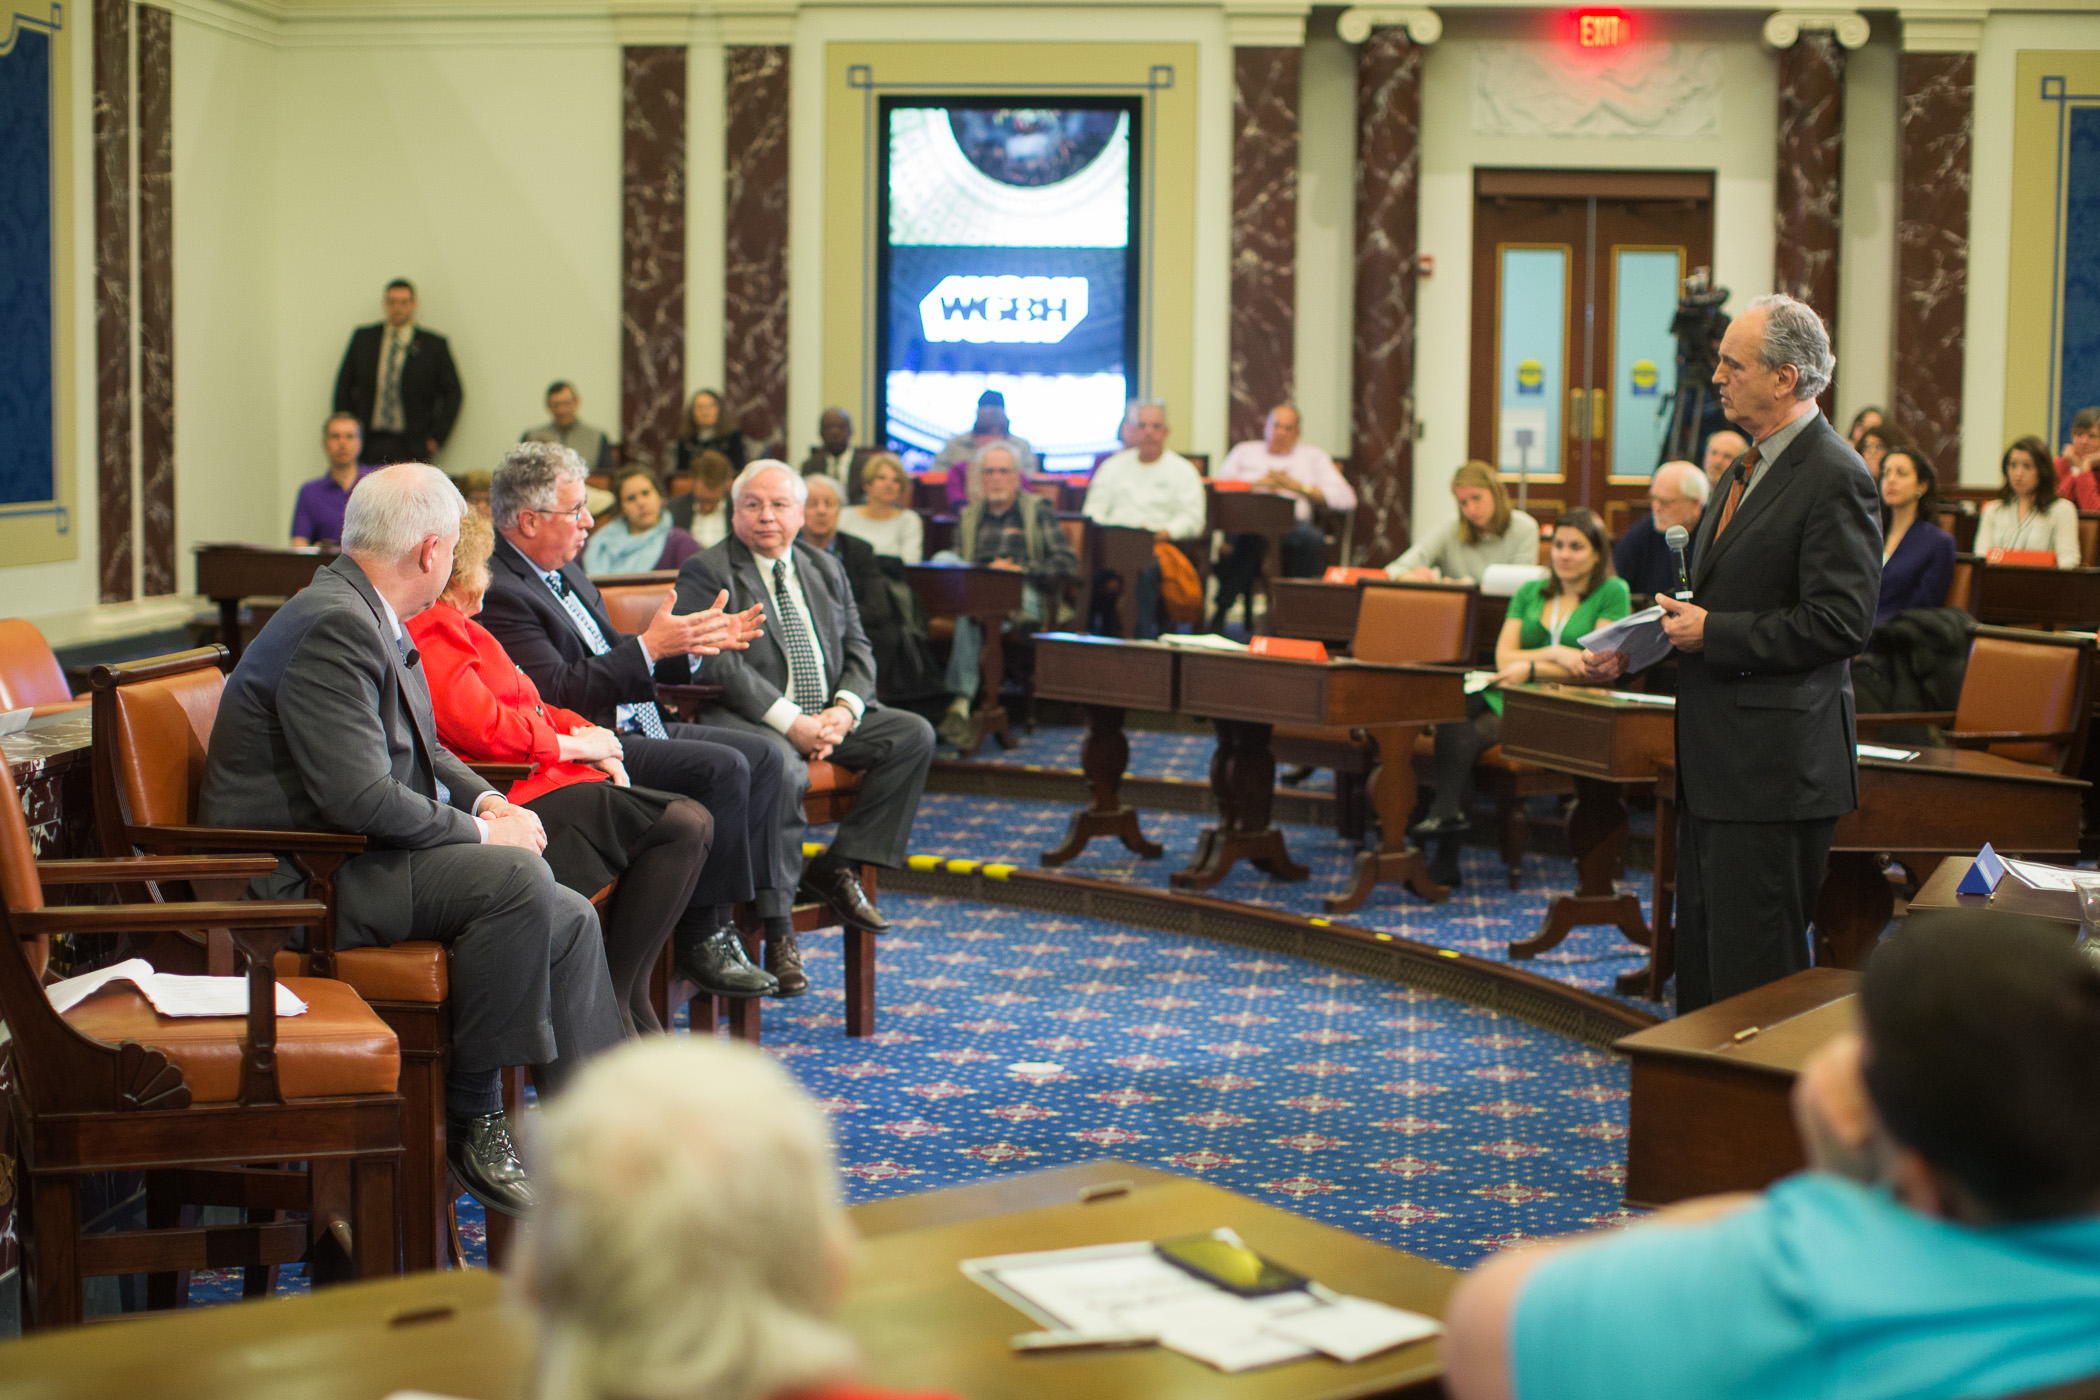 Eric Haynes hosting a panel discussion at the EMK Institute's Senate Chamber